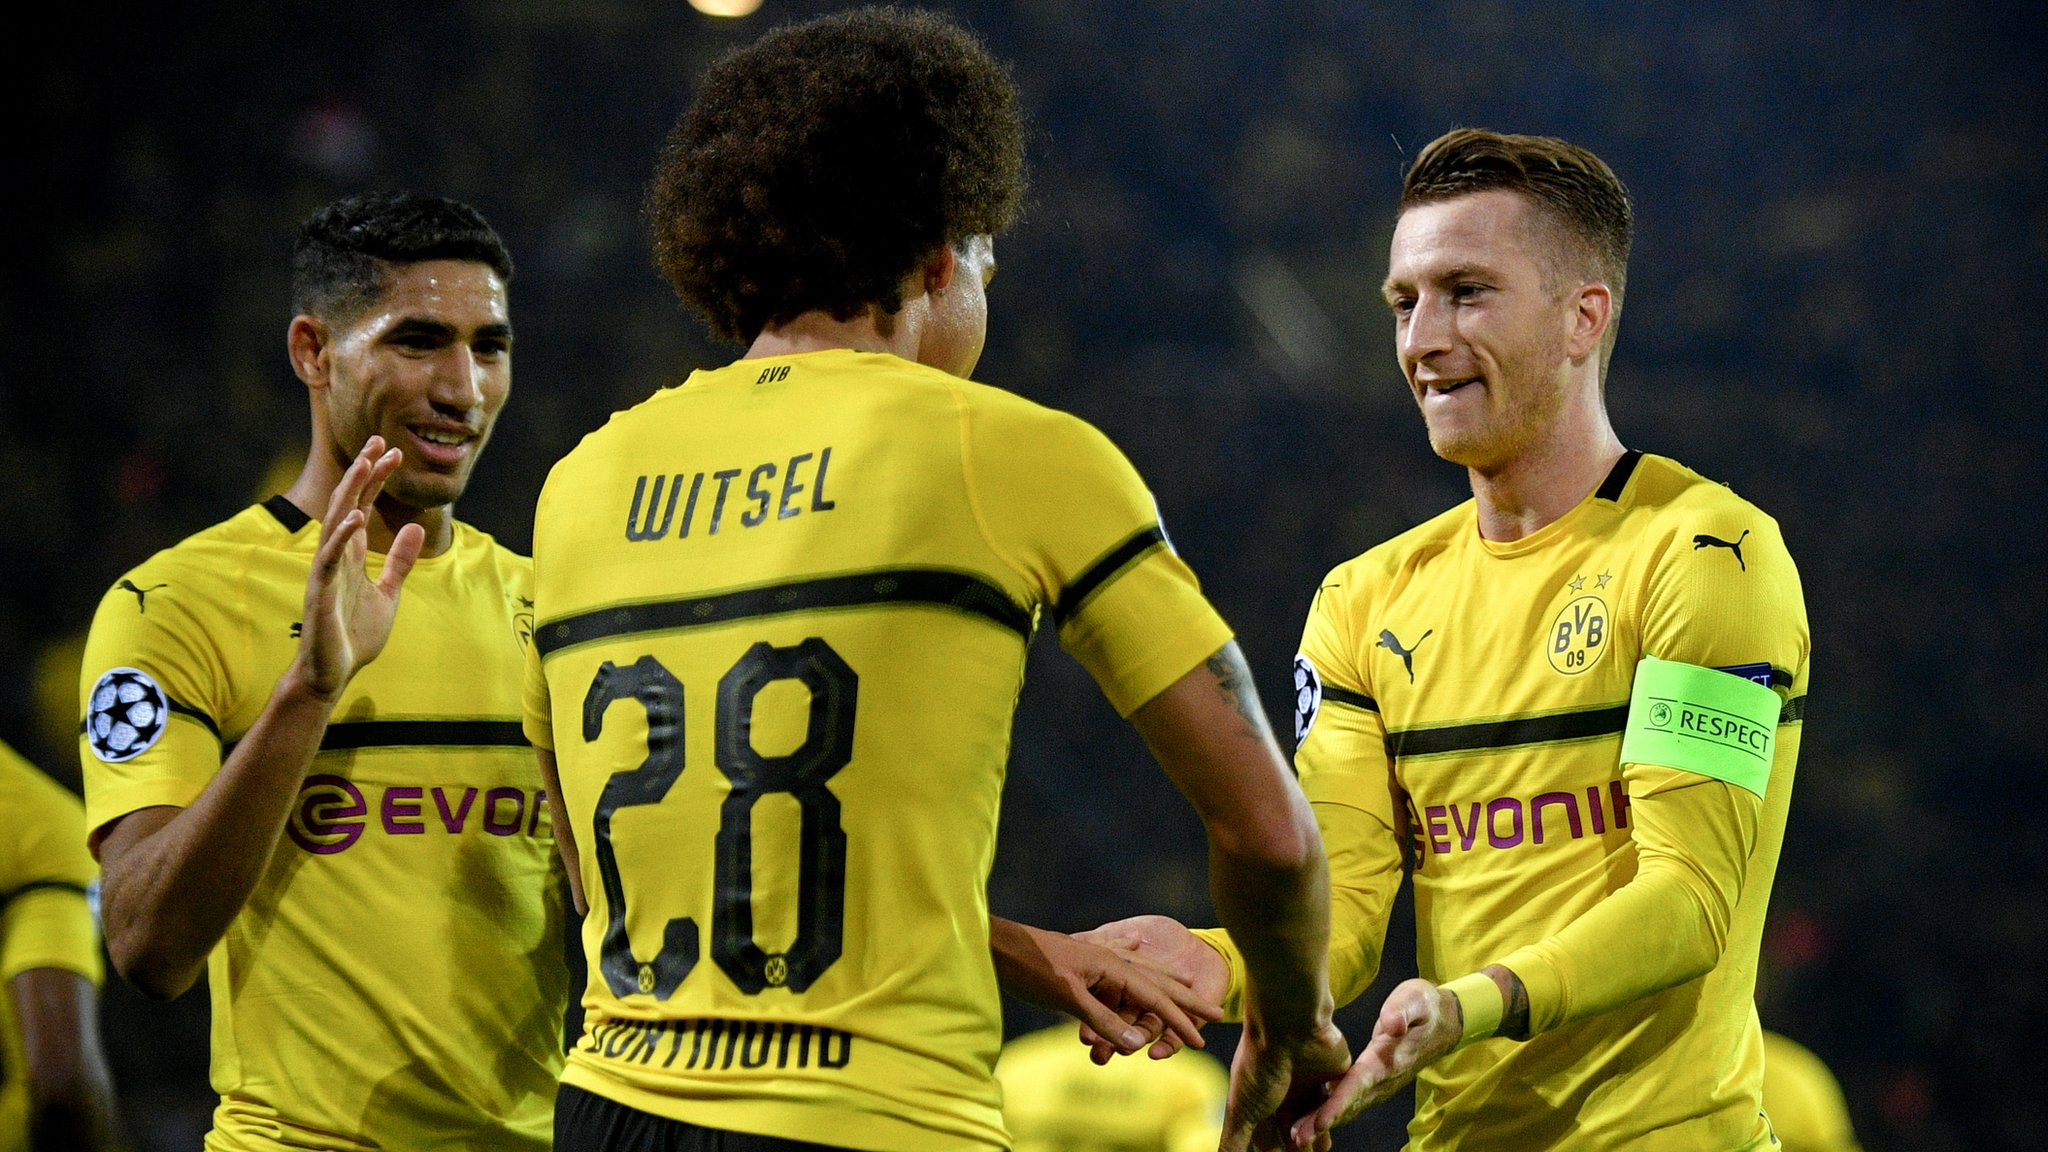 'Their goalscoring is frightening' - Can Dortmund end Bayern's reign?